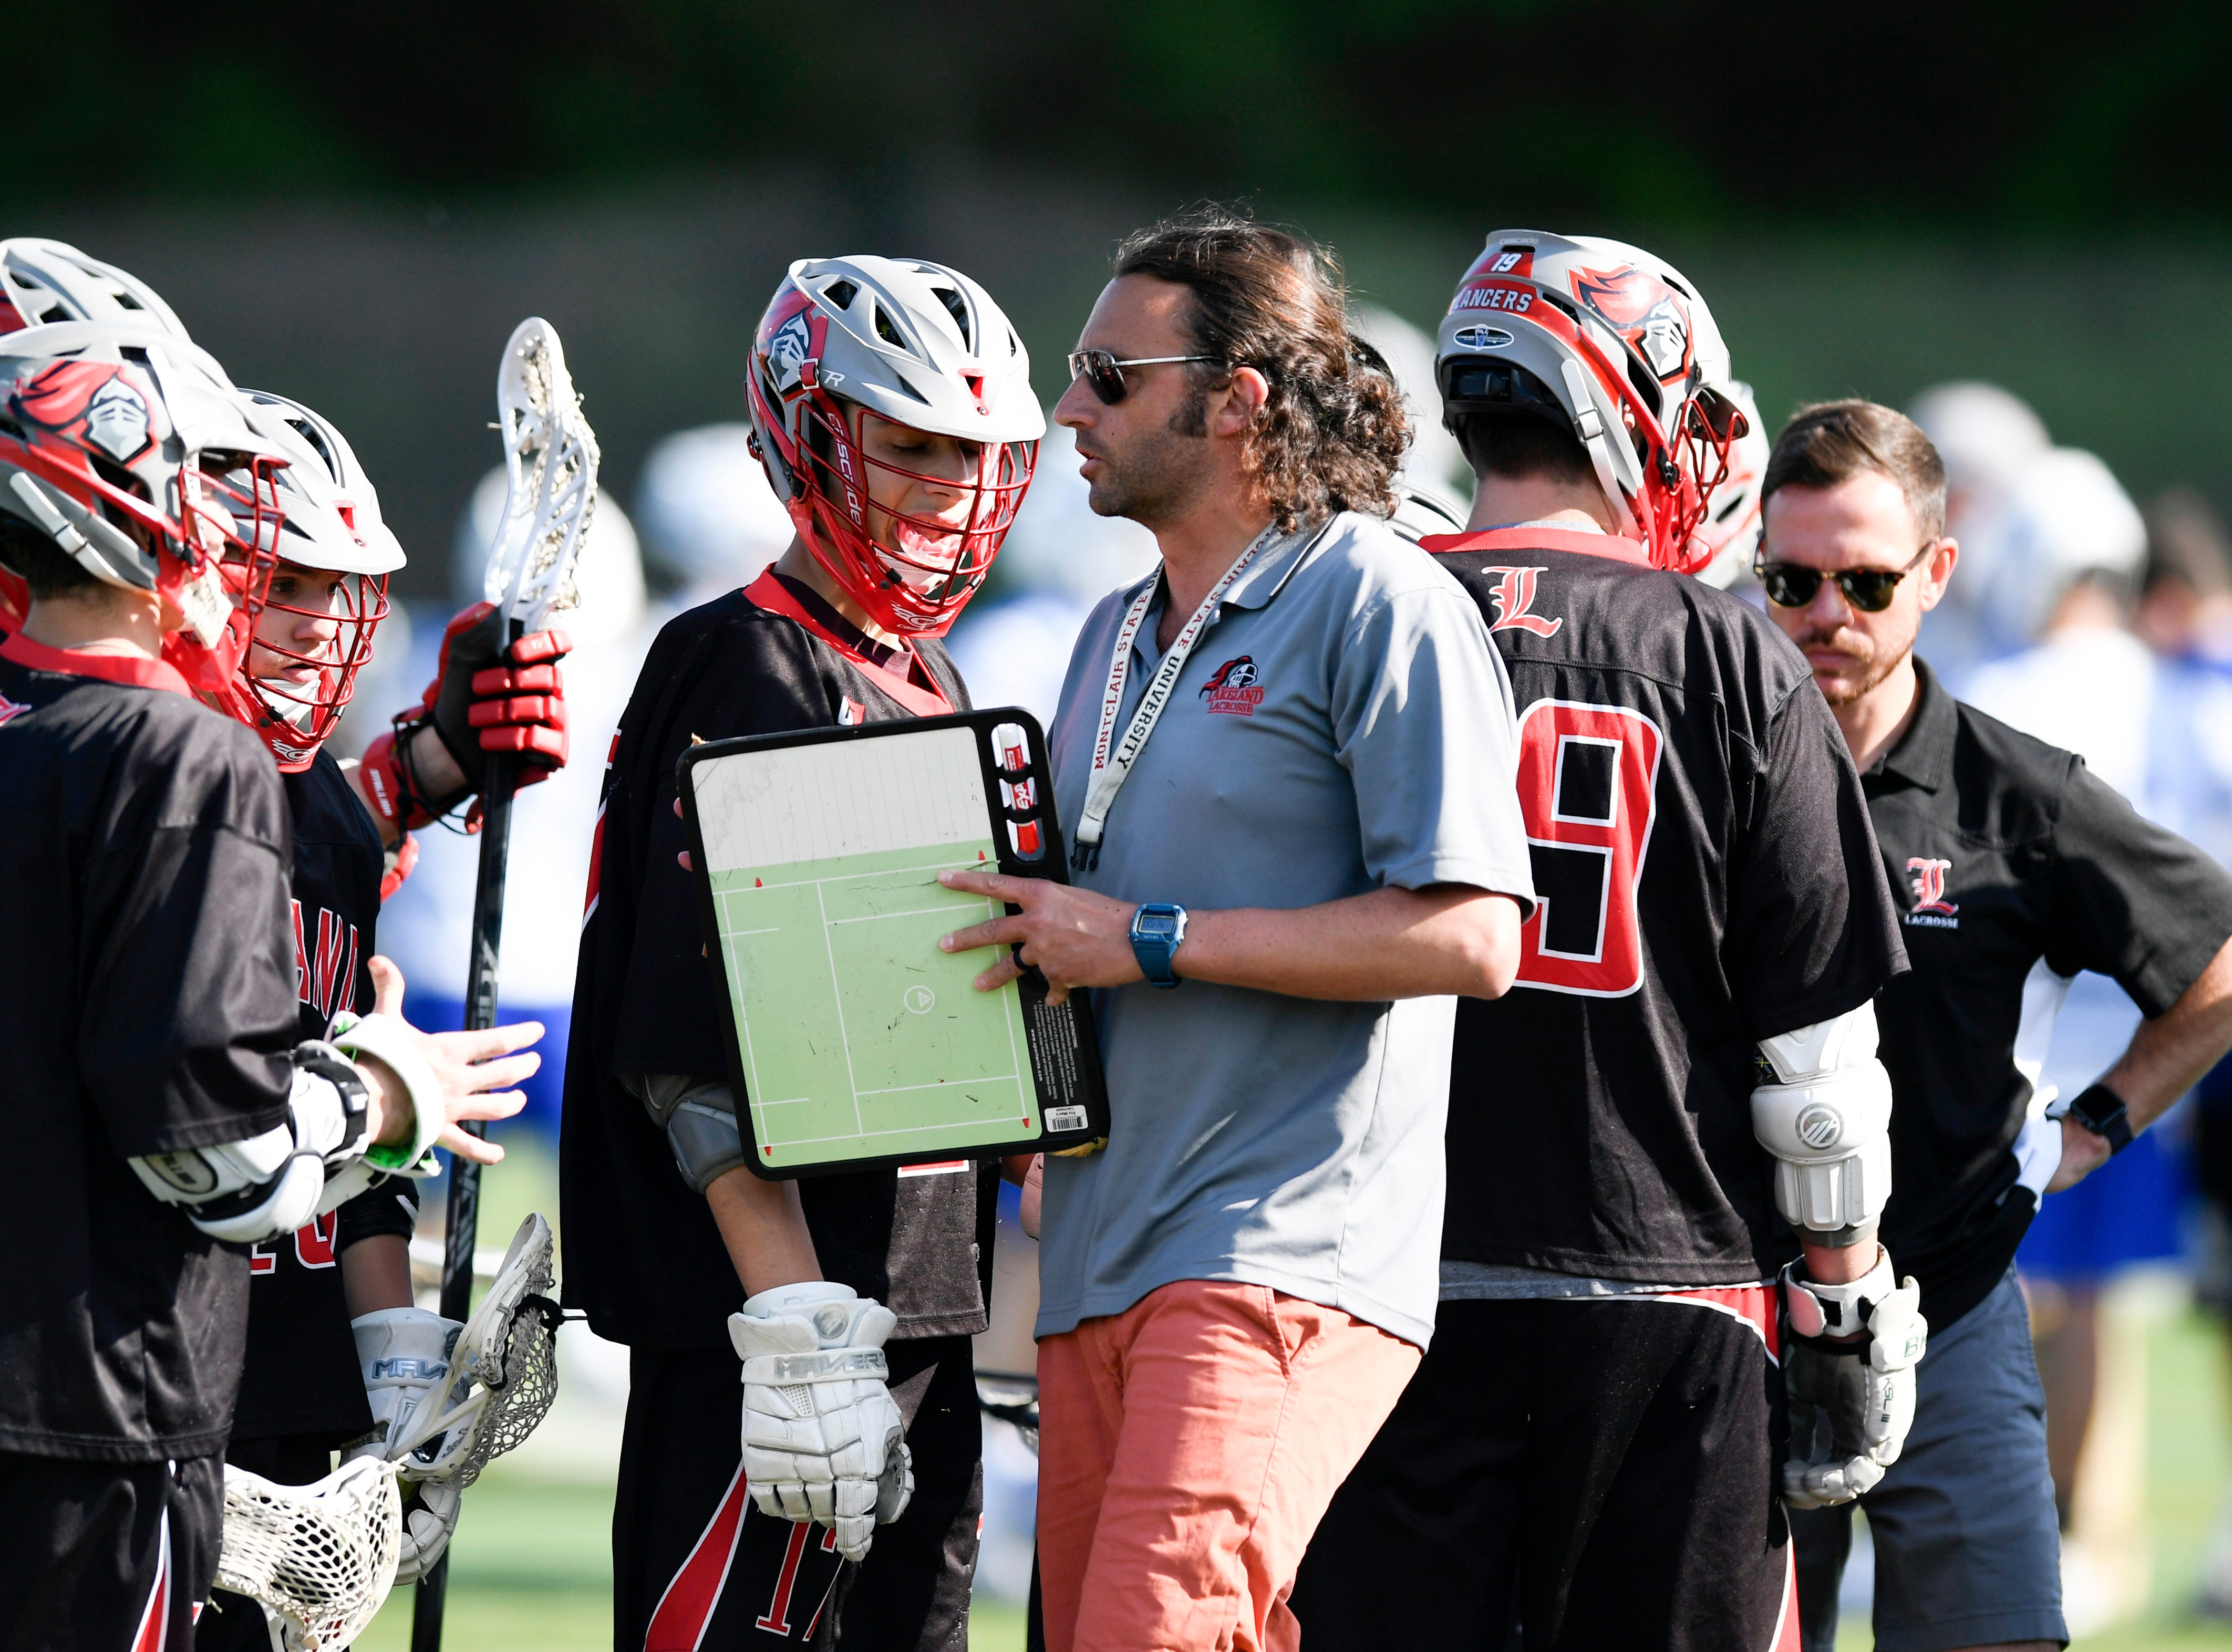 Lakeland head coach Jesse Kolodin talk to his team during a time out. Northern Valley Demarest defeated Lakeland 6-3 in the first round of the North Group 2 boys lacrosse tournament on Wednesday, May 15, 2019 in Demarest, NJ.